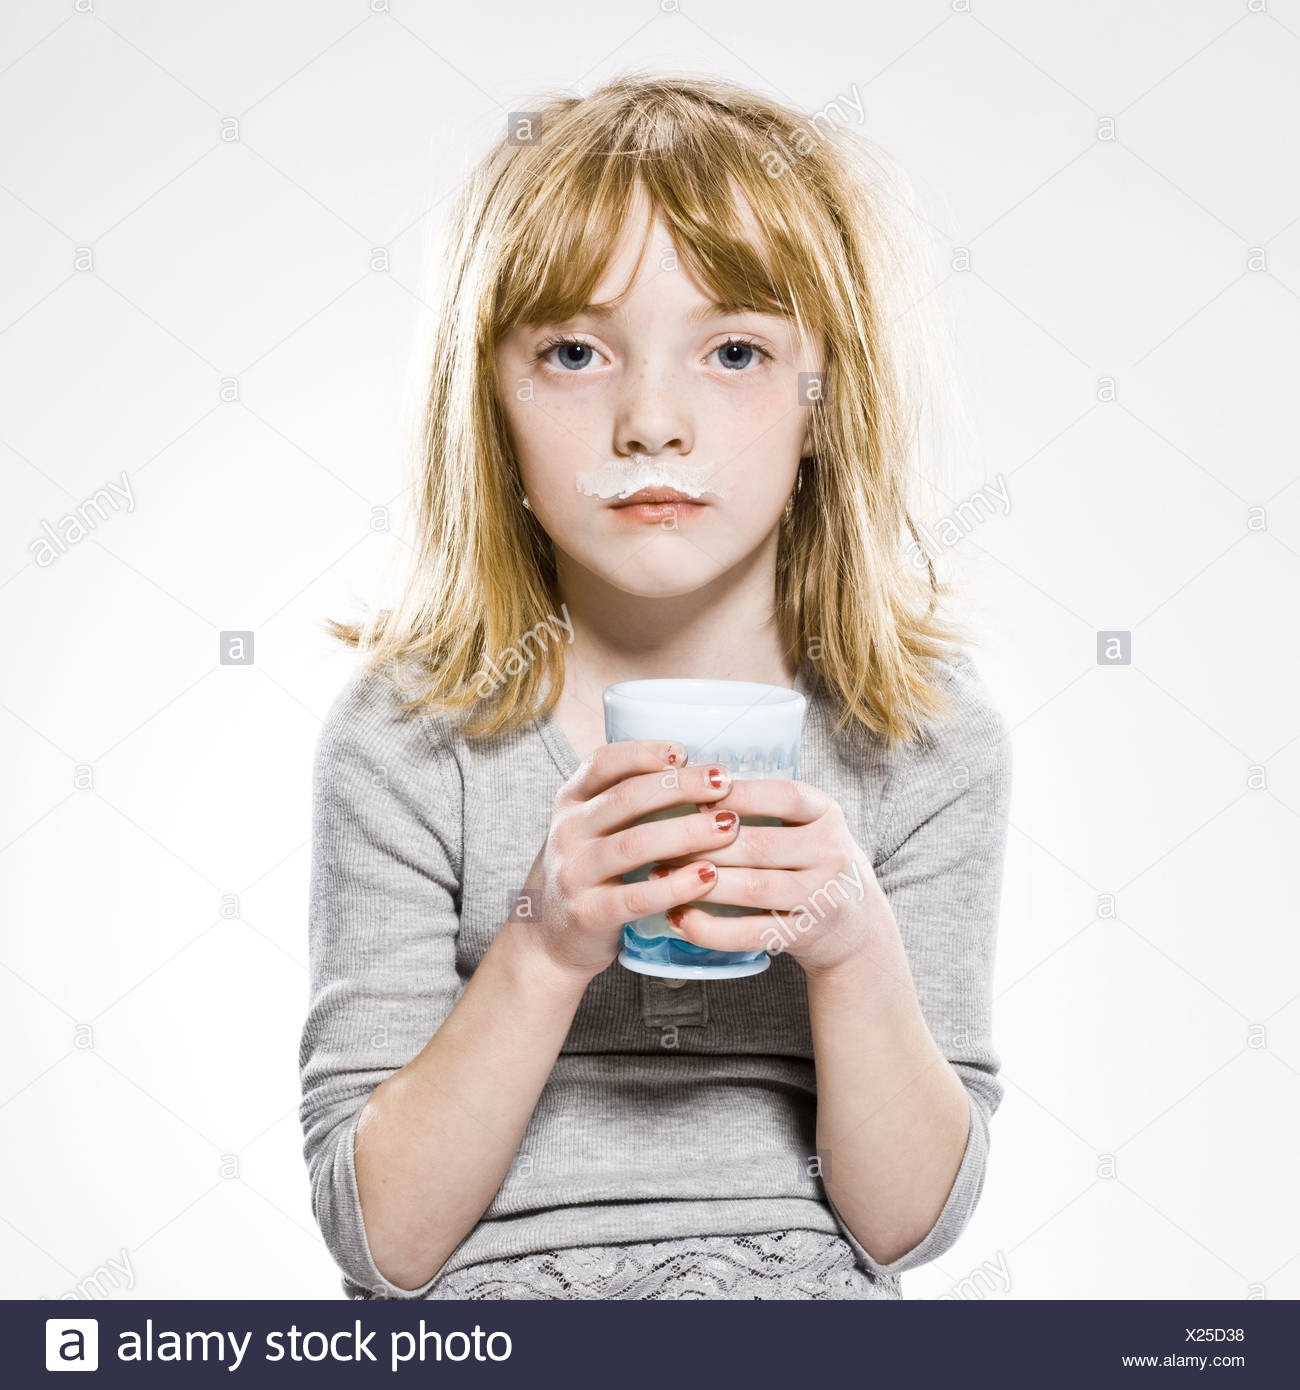 girl looking at the camera with milk mustache - Stock Image